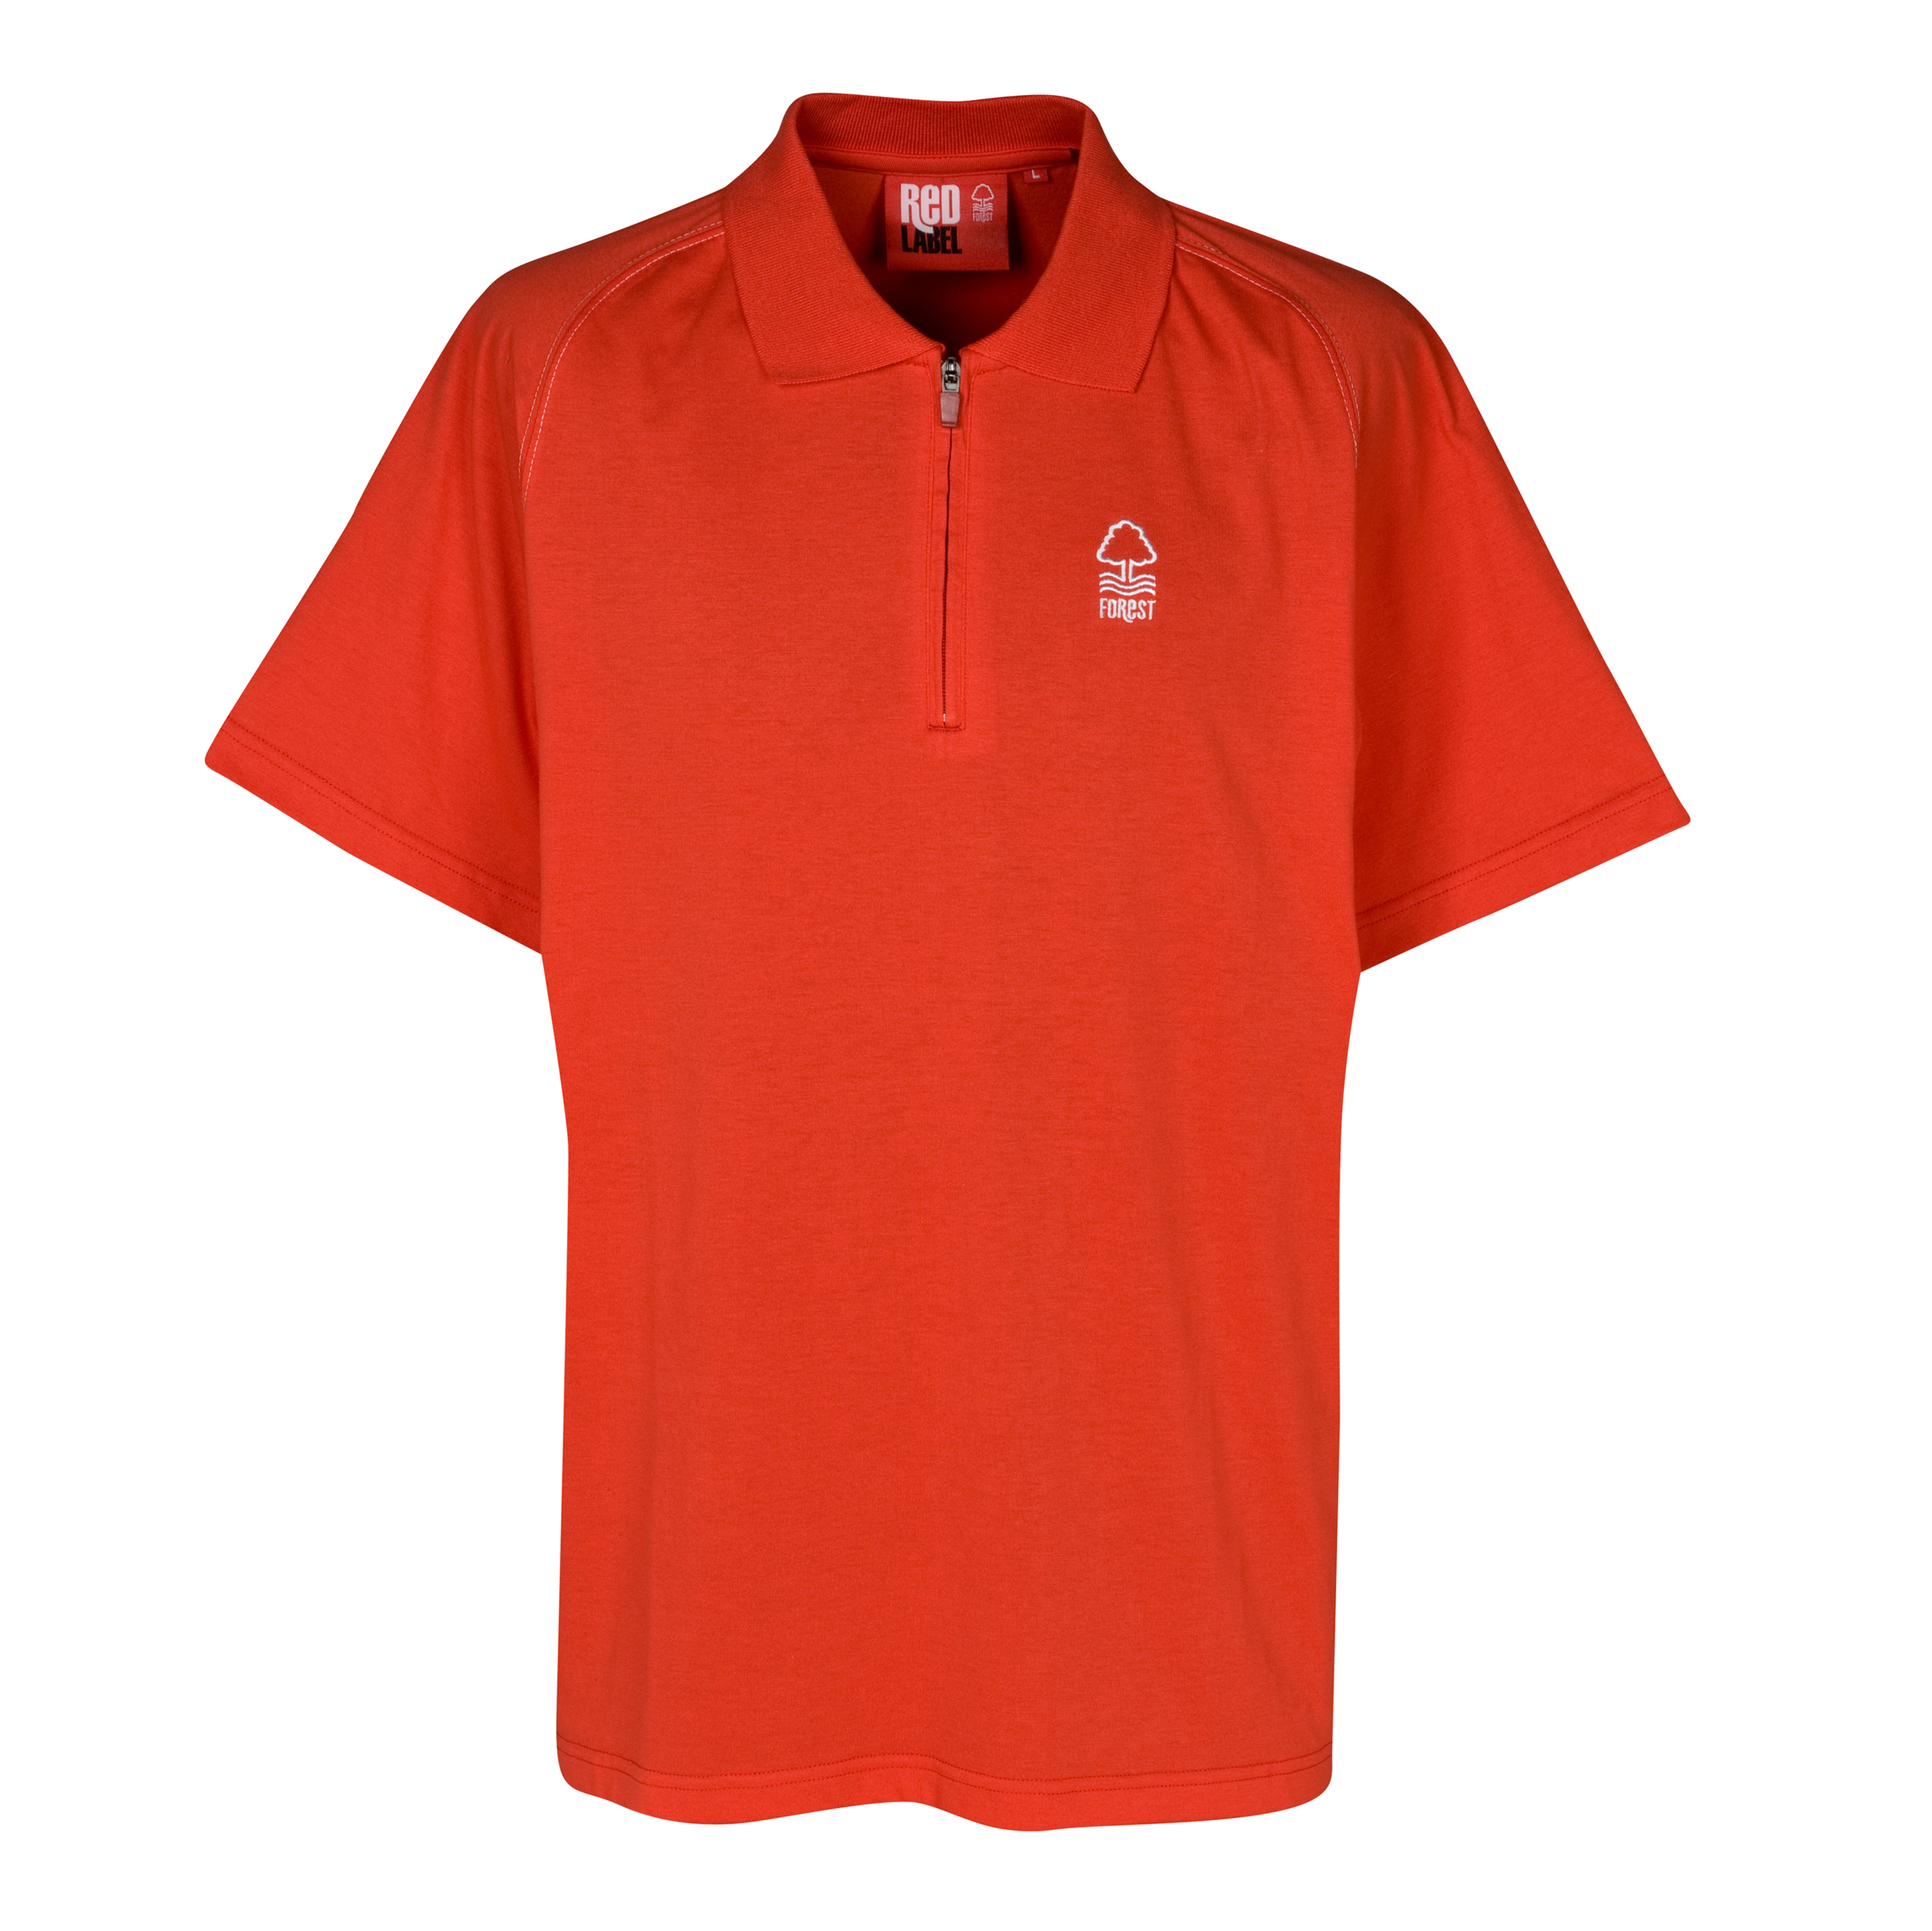 Nottingham Forest Essential Stones Zip Polo Top - Red